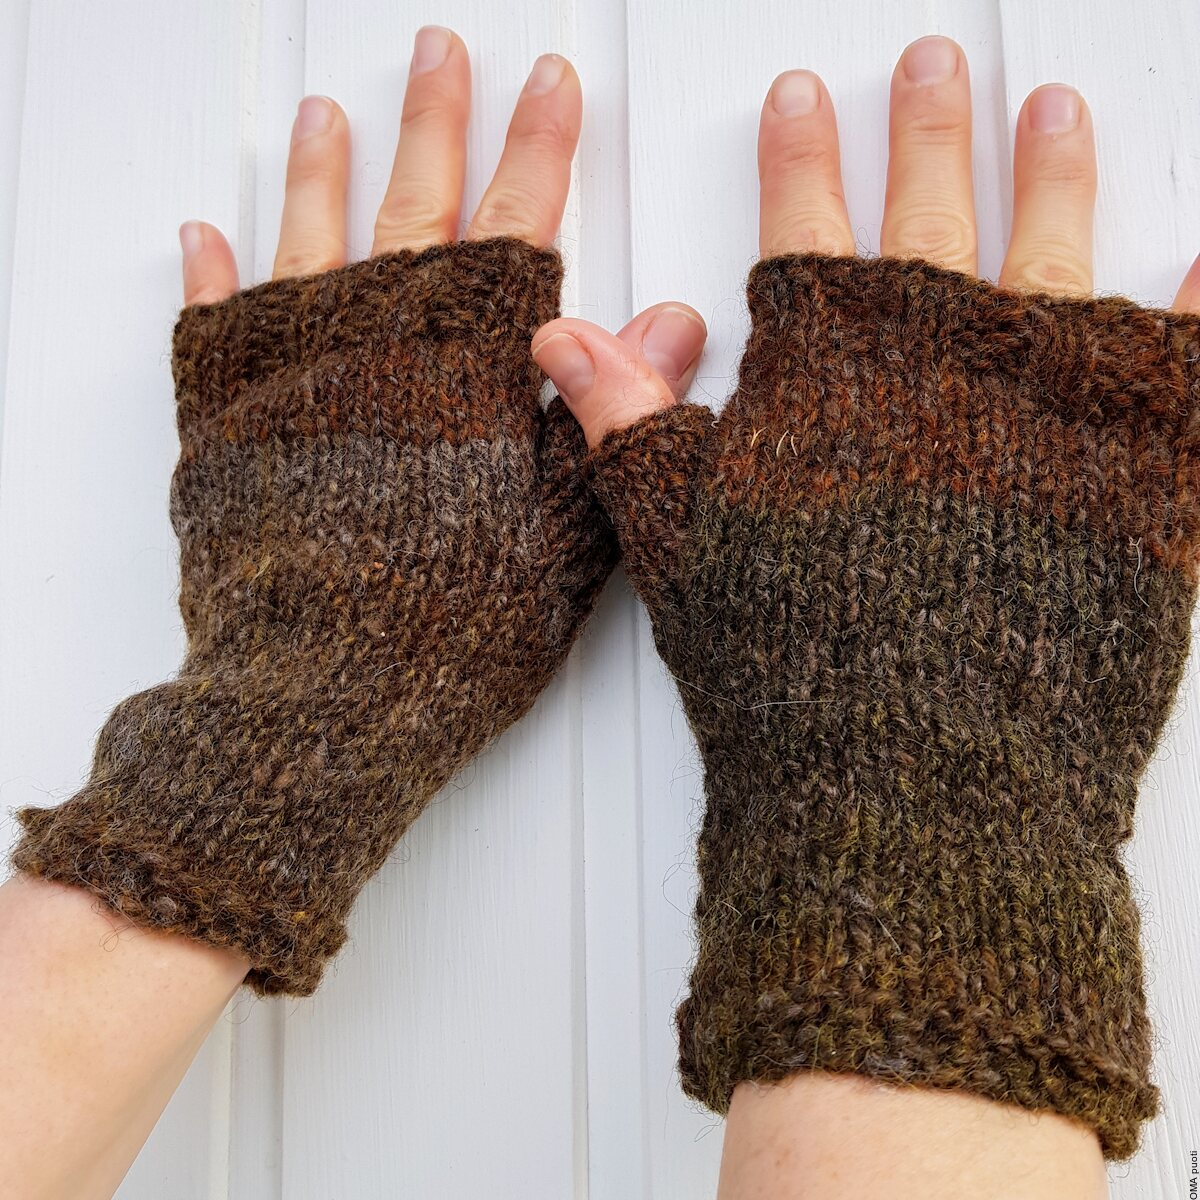 Wondering where you can buy the yarn for this pattern?